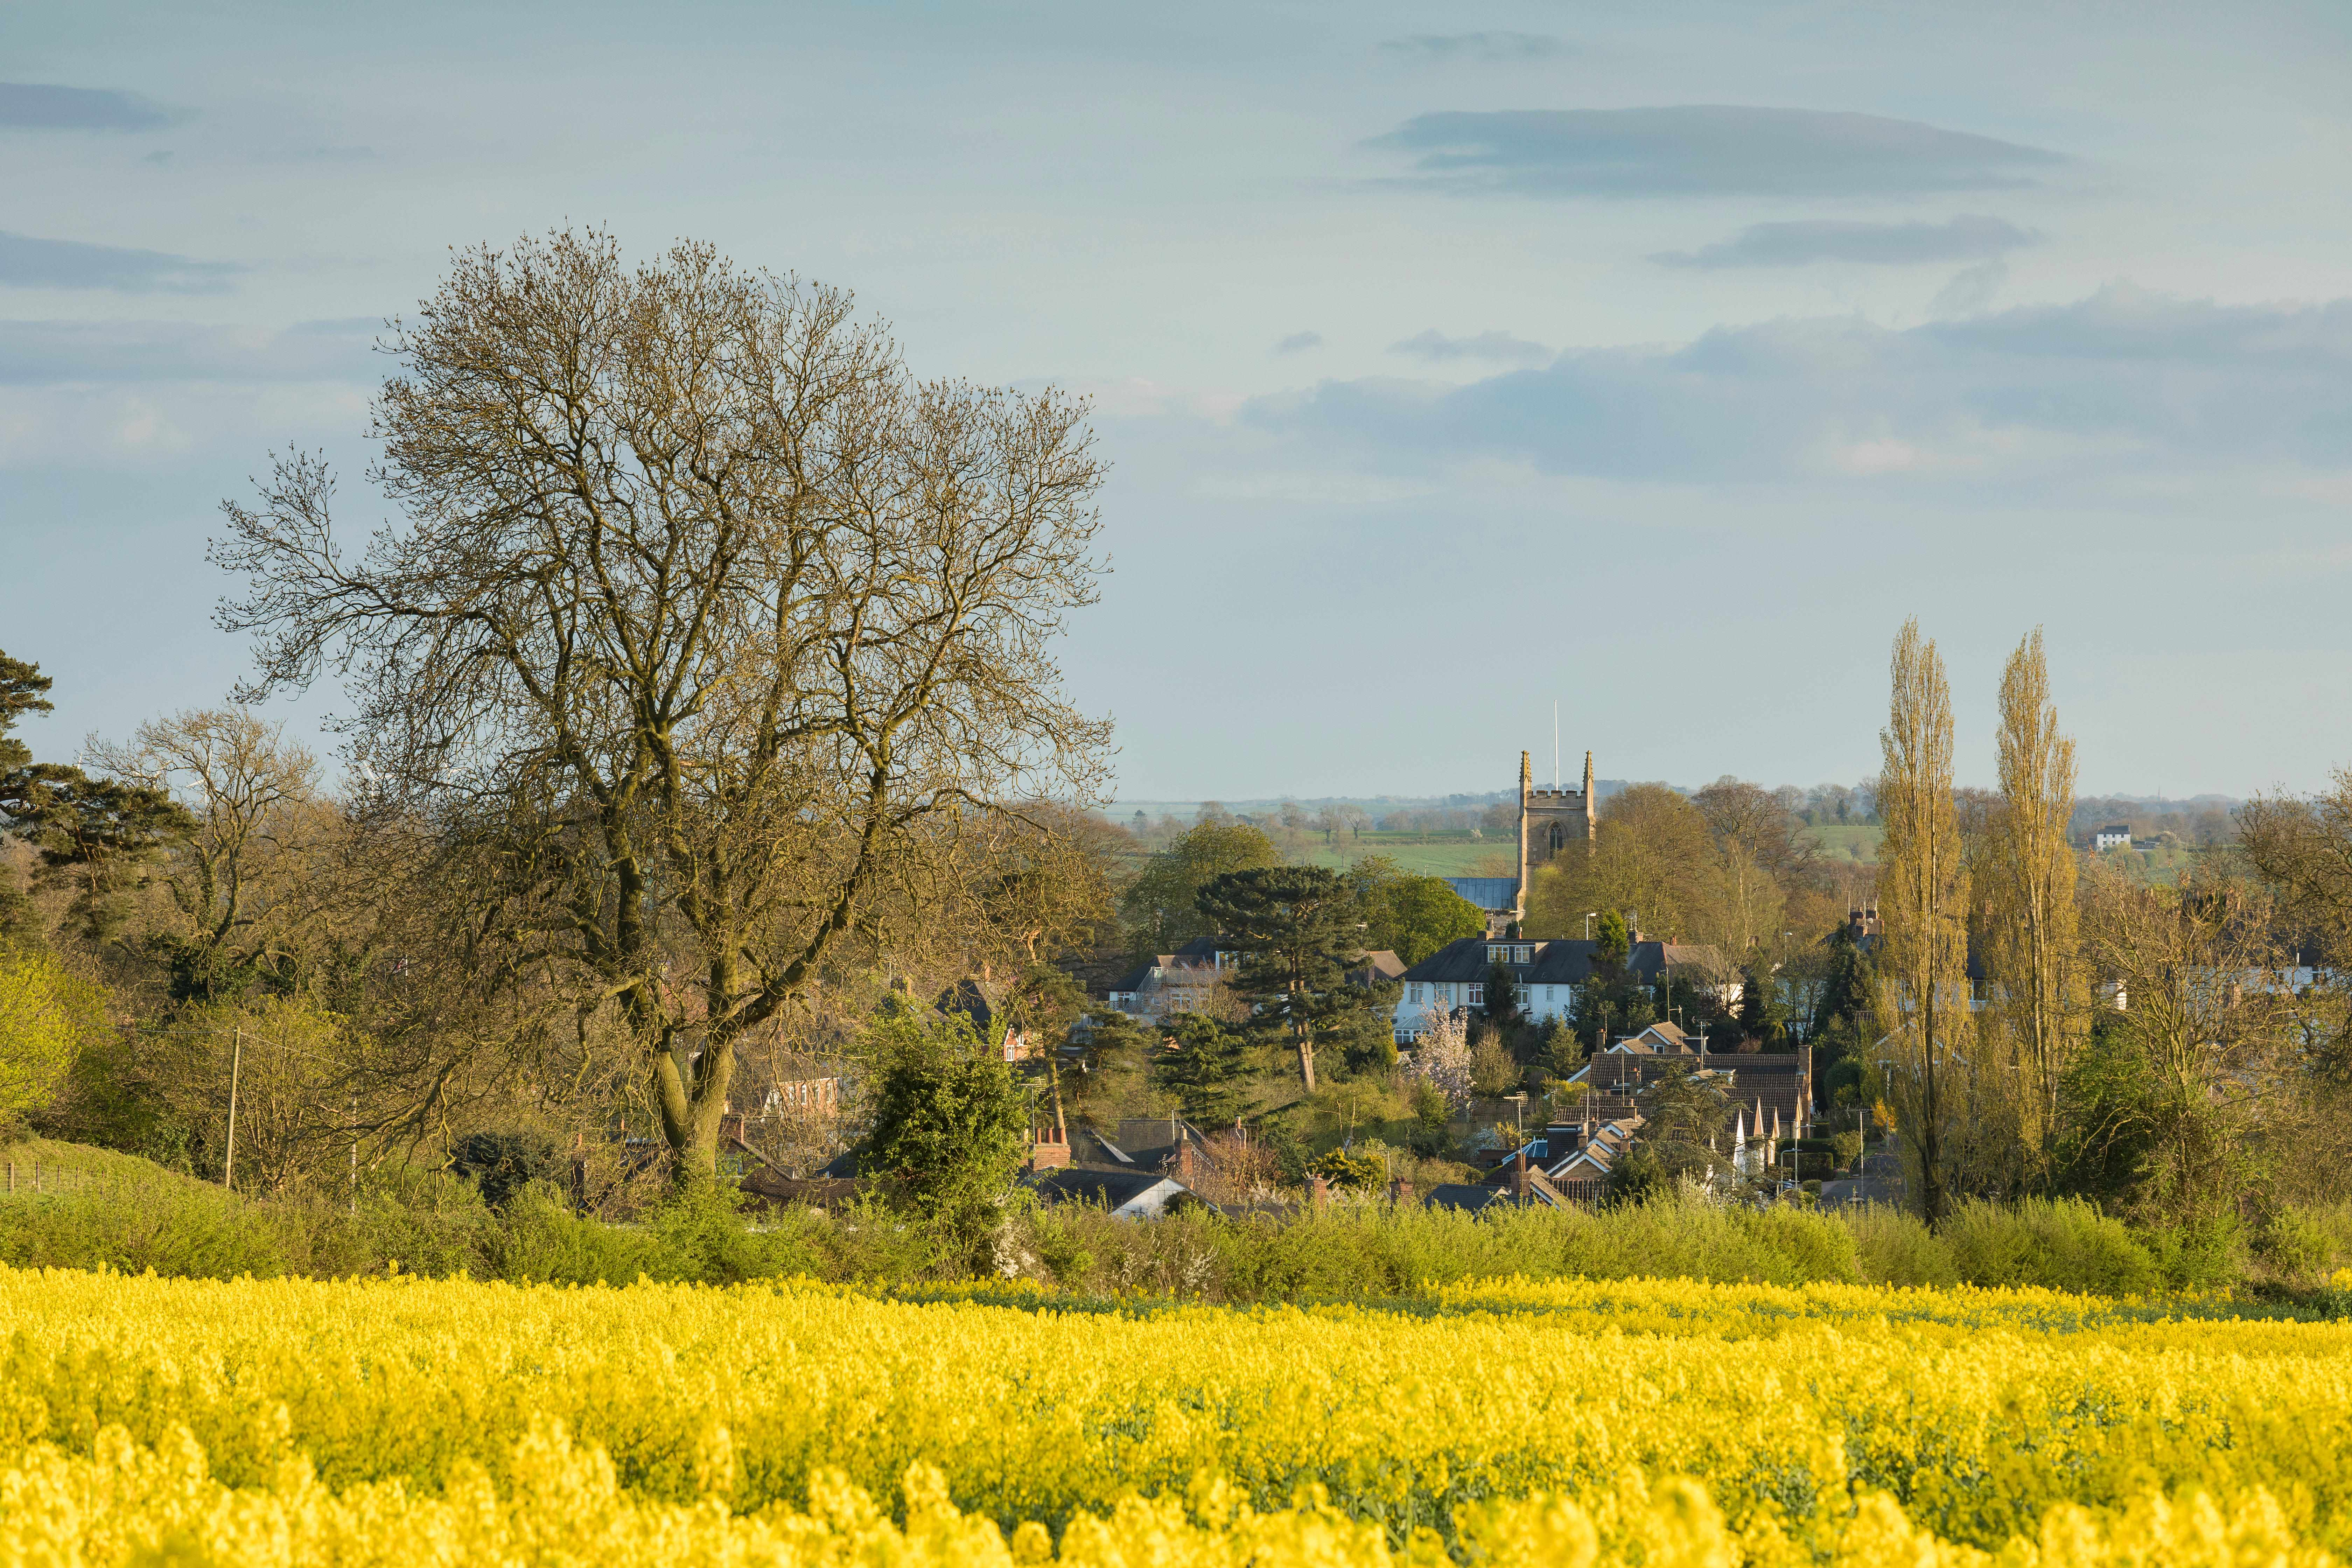 Modern day Kibworth, Leicestershire. (Alamy)